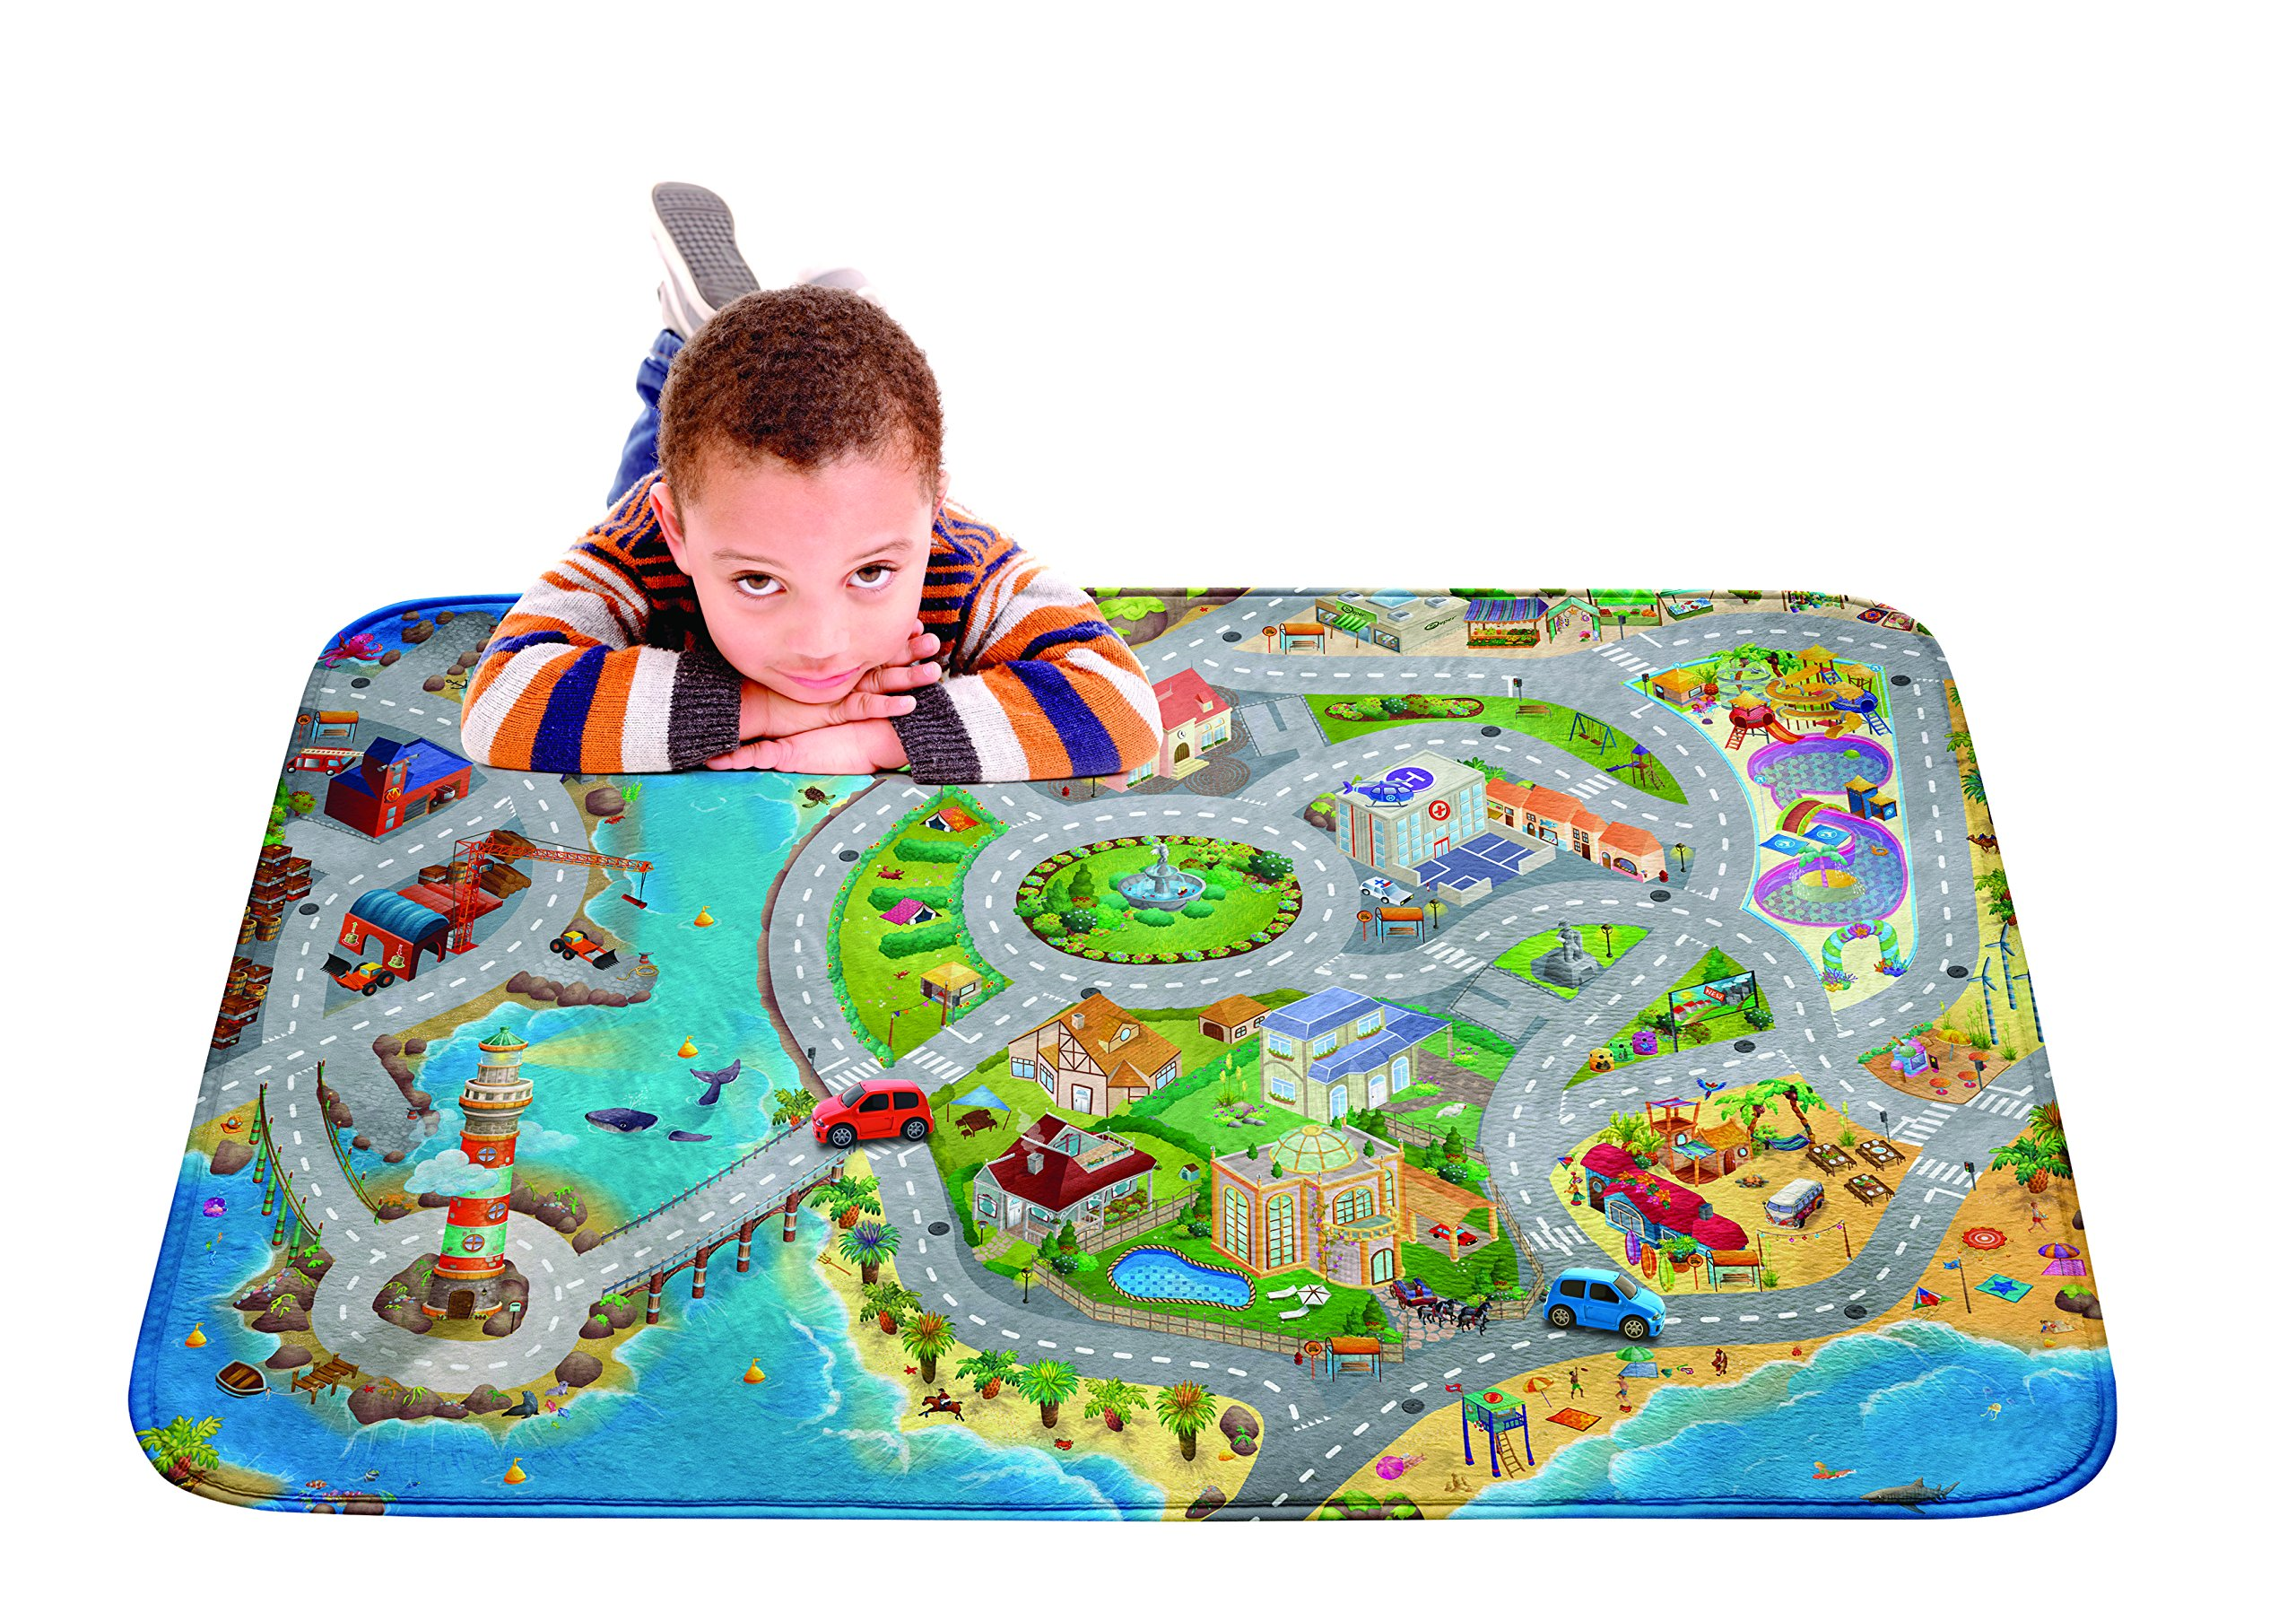 Kids Ultra Soft Play Mat for Children Learnig Carpet Car Area Rugs - Sea Side Design 39x59 inch